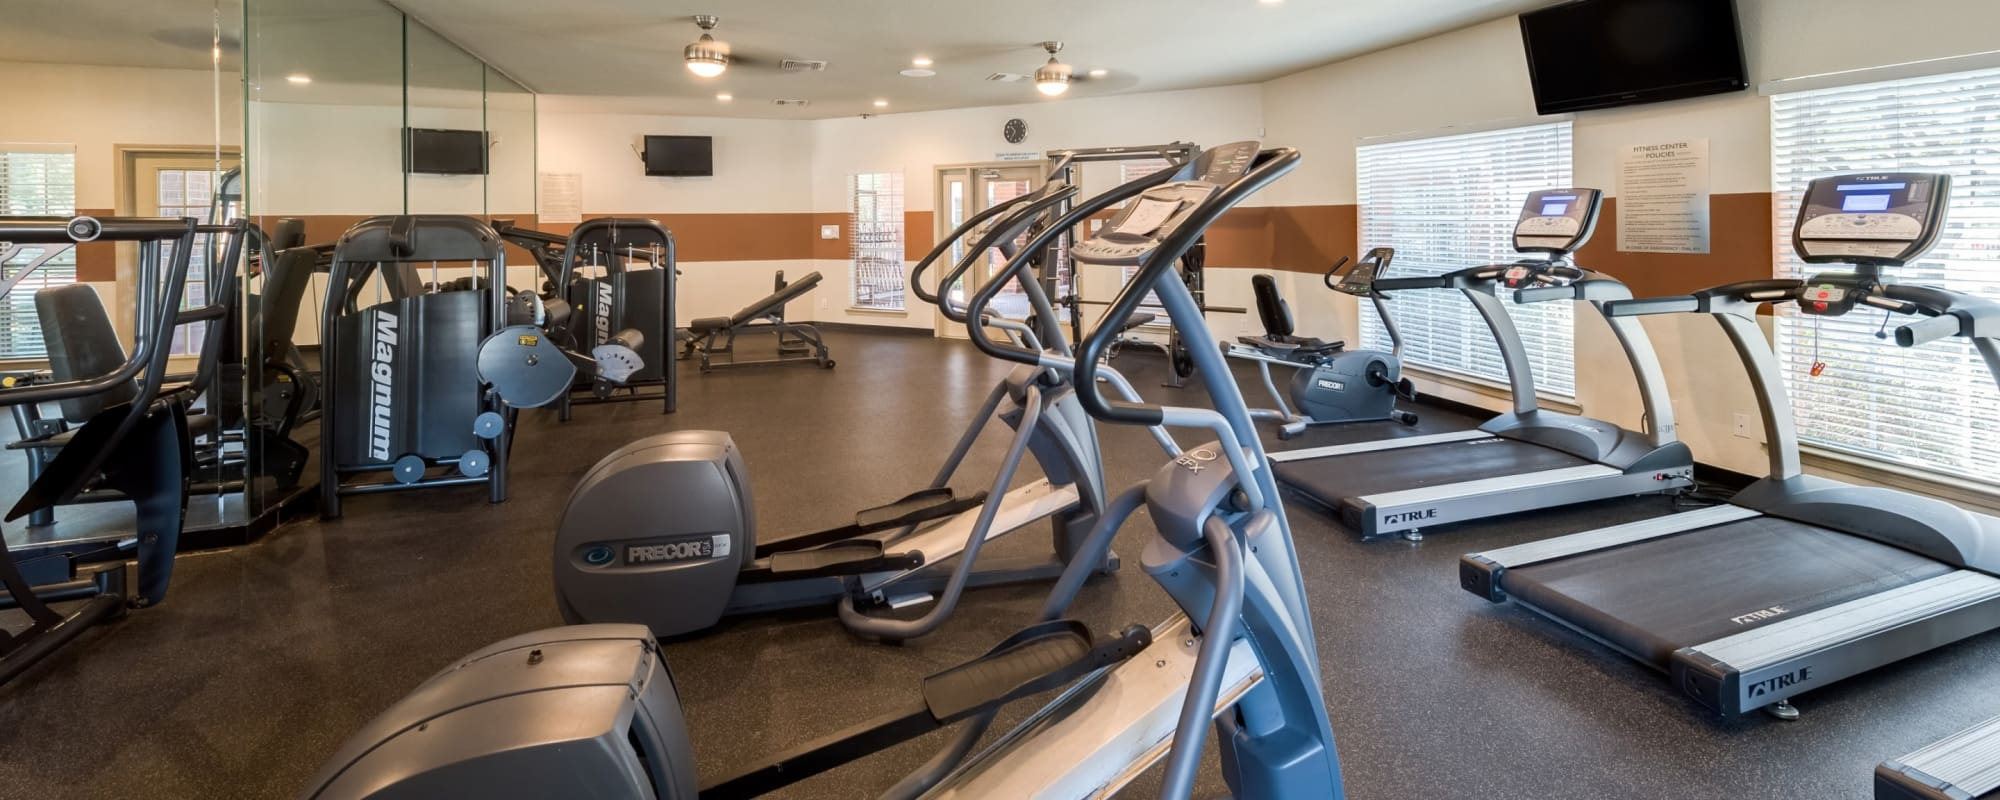 Fitness center at The Paramount